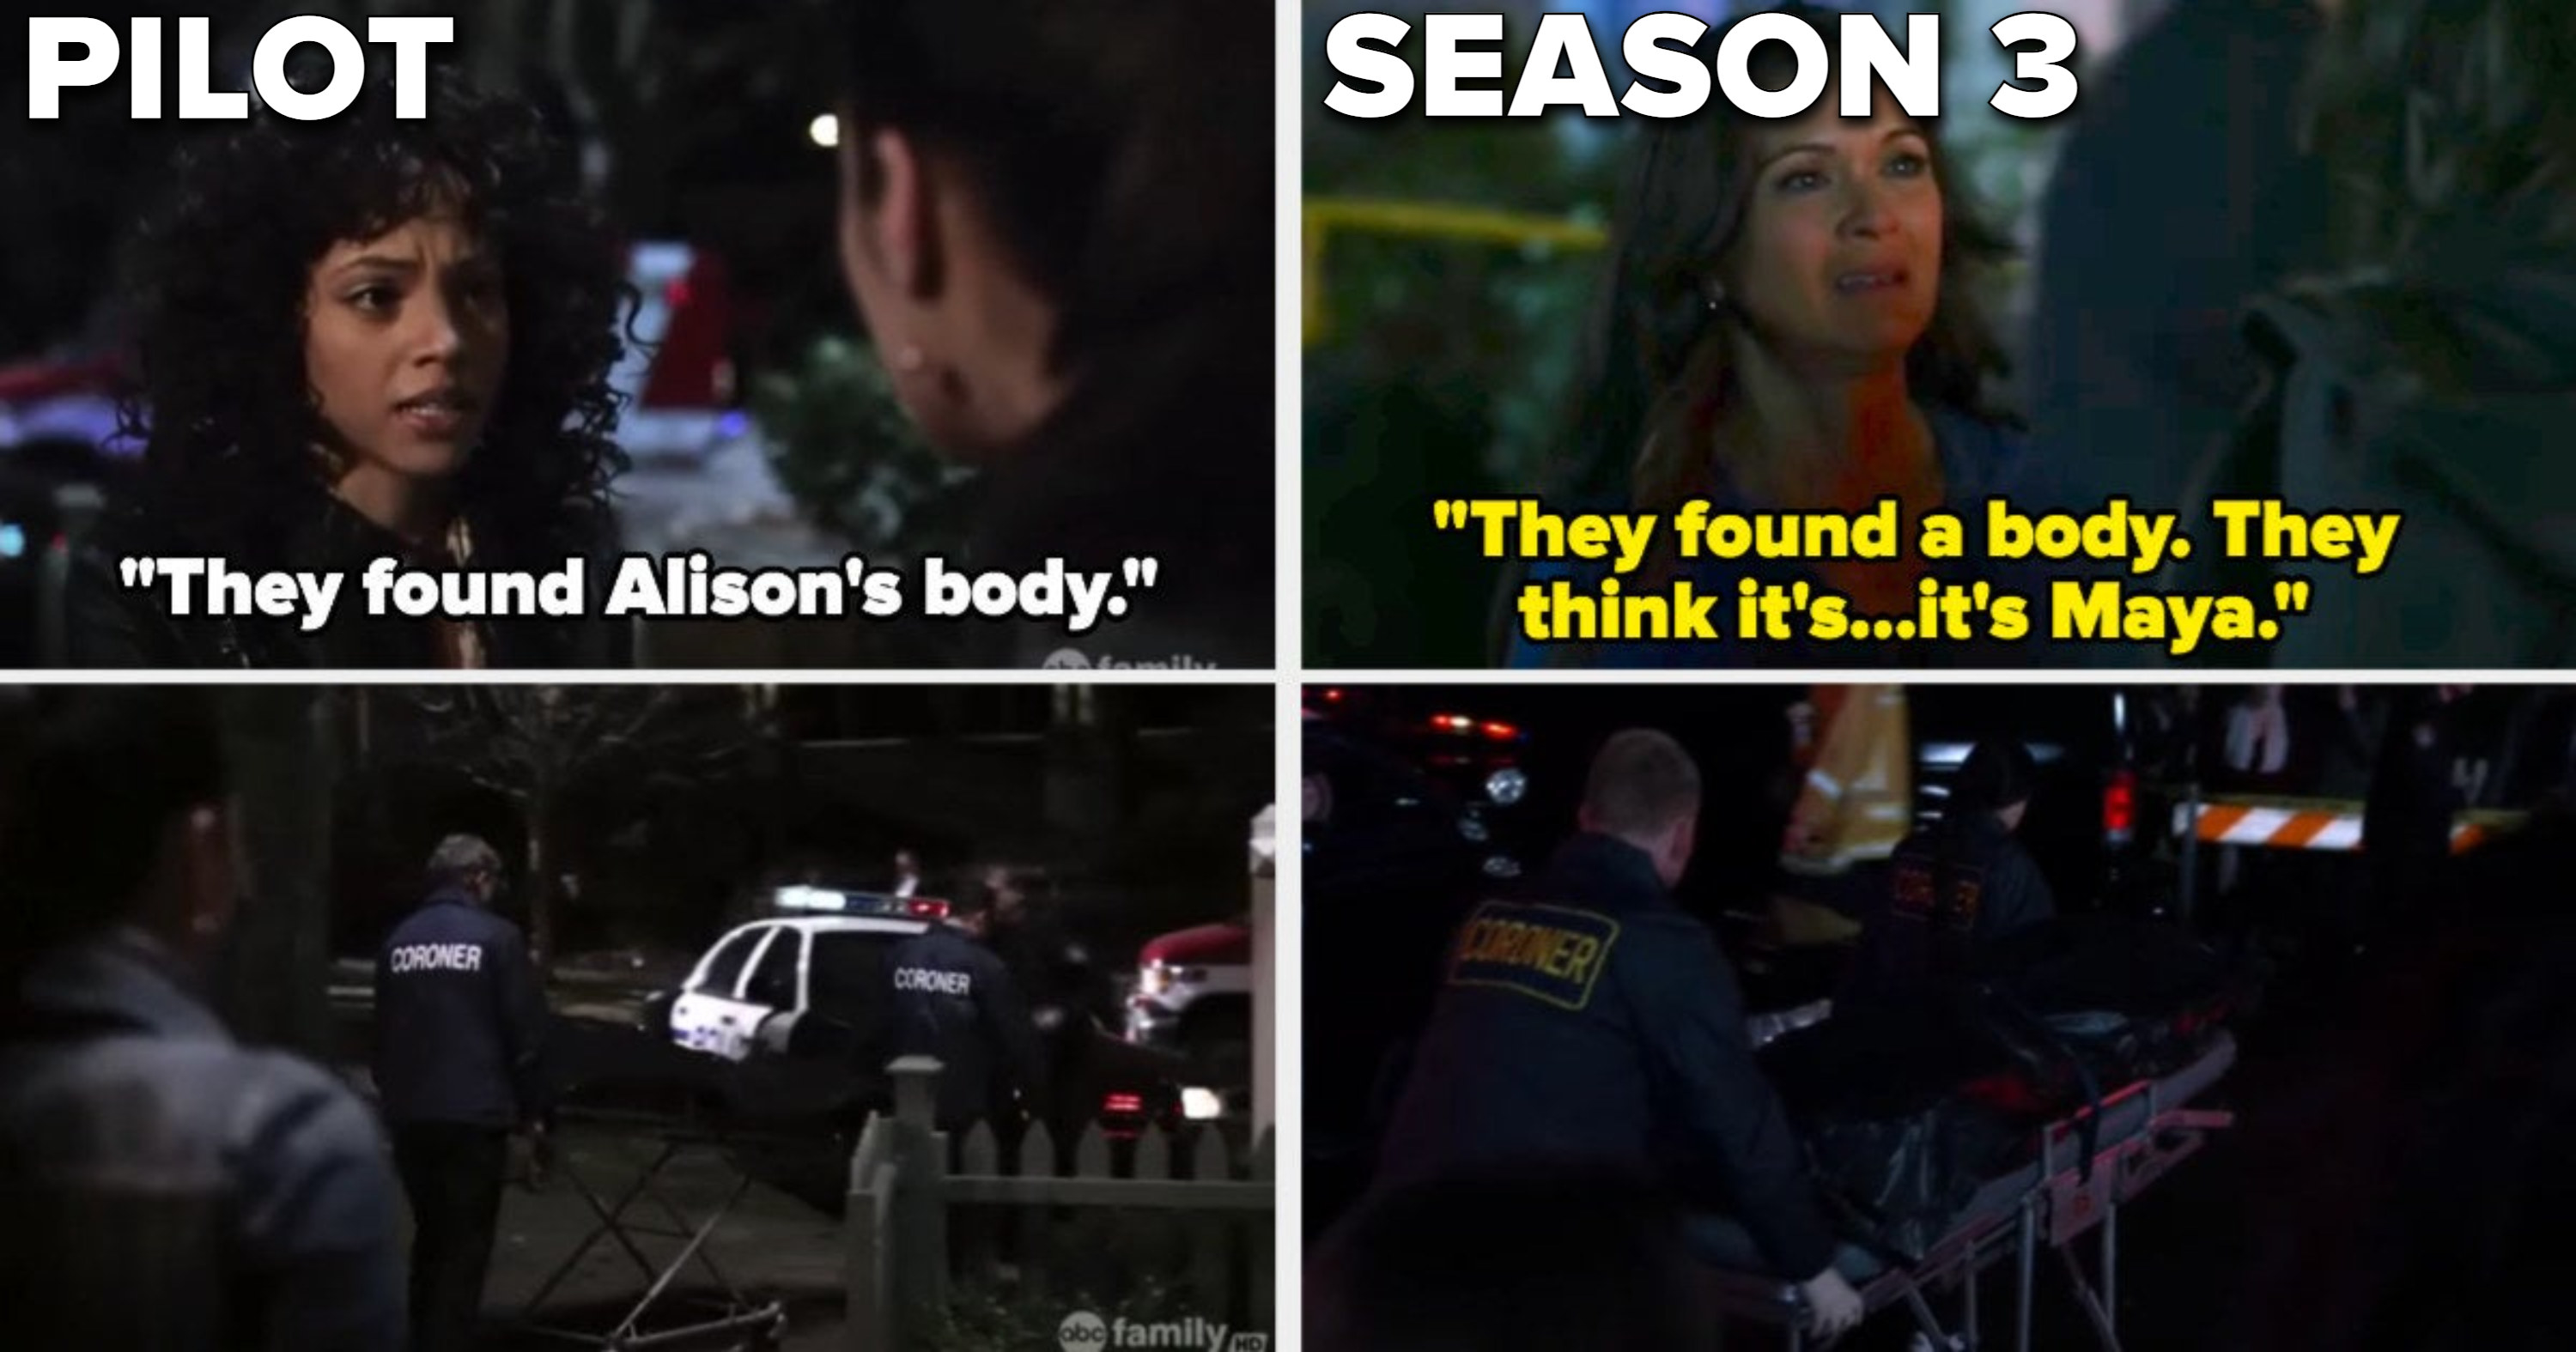 In the pilot, Maya tells Emily they found Alison's body and she sees the coroners dragging it away, and the same happens in Season 3 but it's Emily's mom saying they found Maya's body